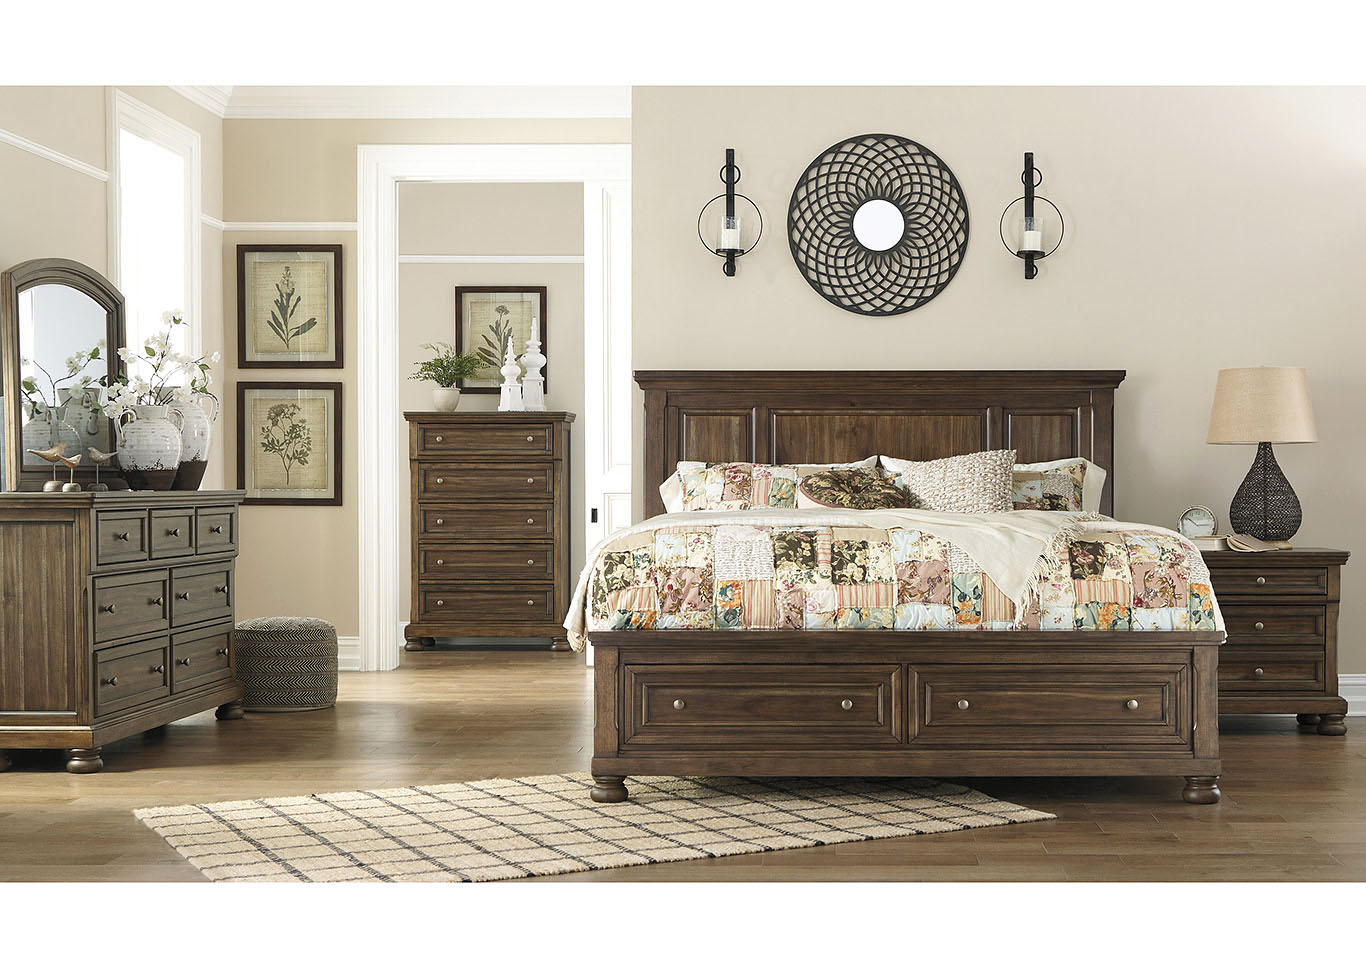 Flynnter Medium Brown Queen Sleigh Storage Bed,Signature Design By Ashley